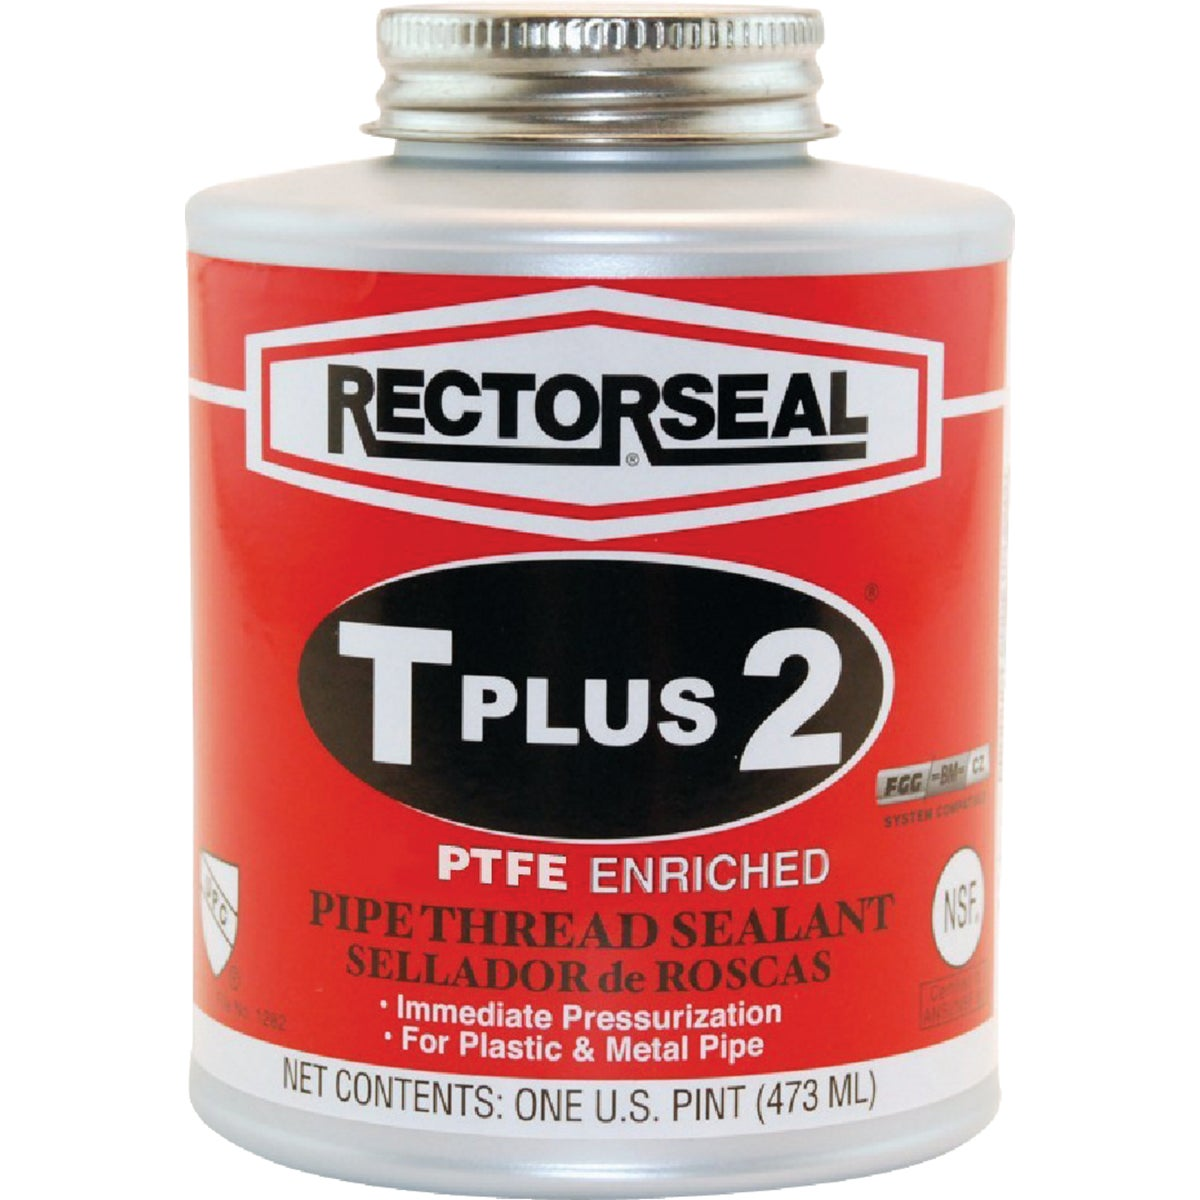 PINT PIPE THREAD SEALANT - 23431 by Rectorseal Corp